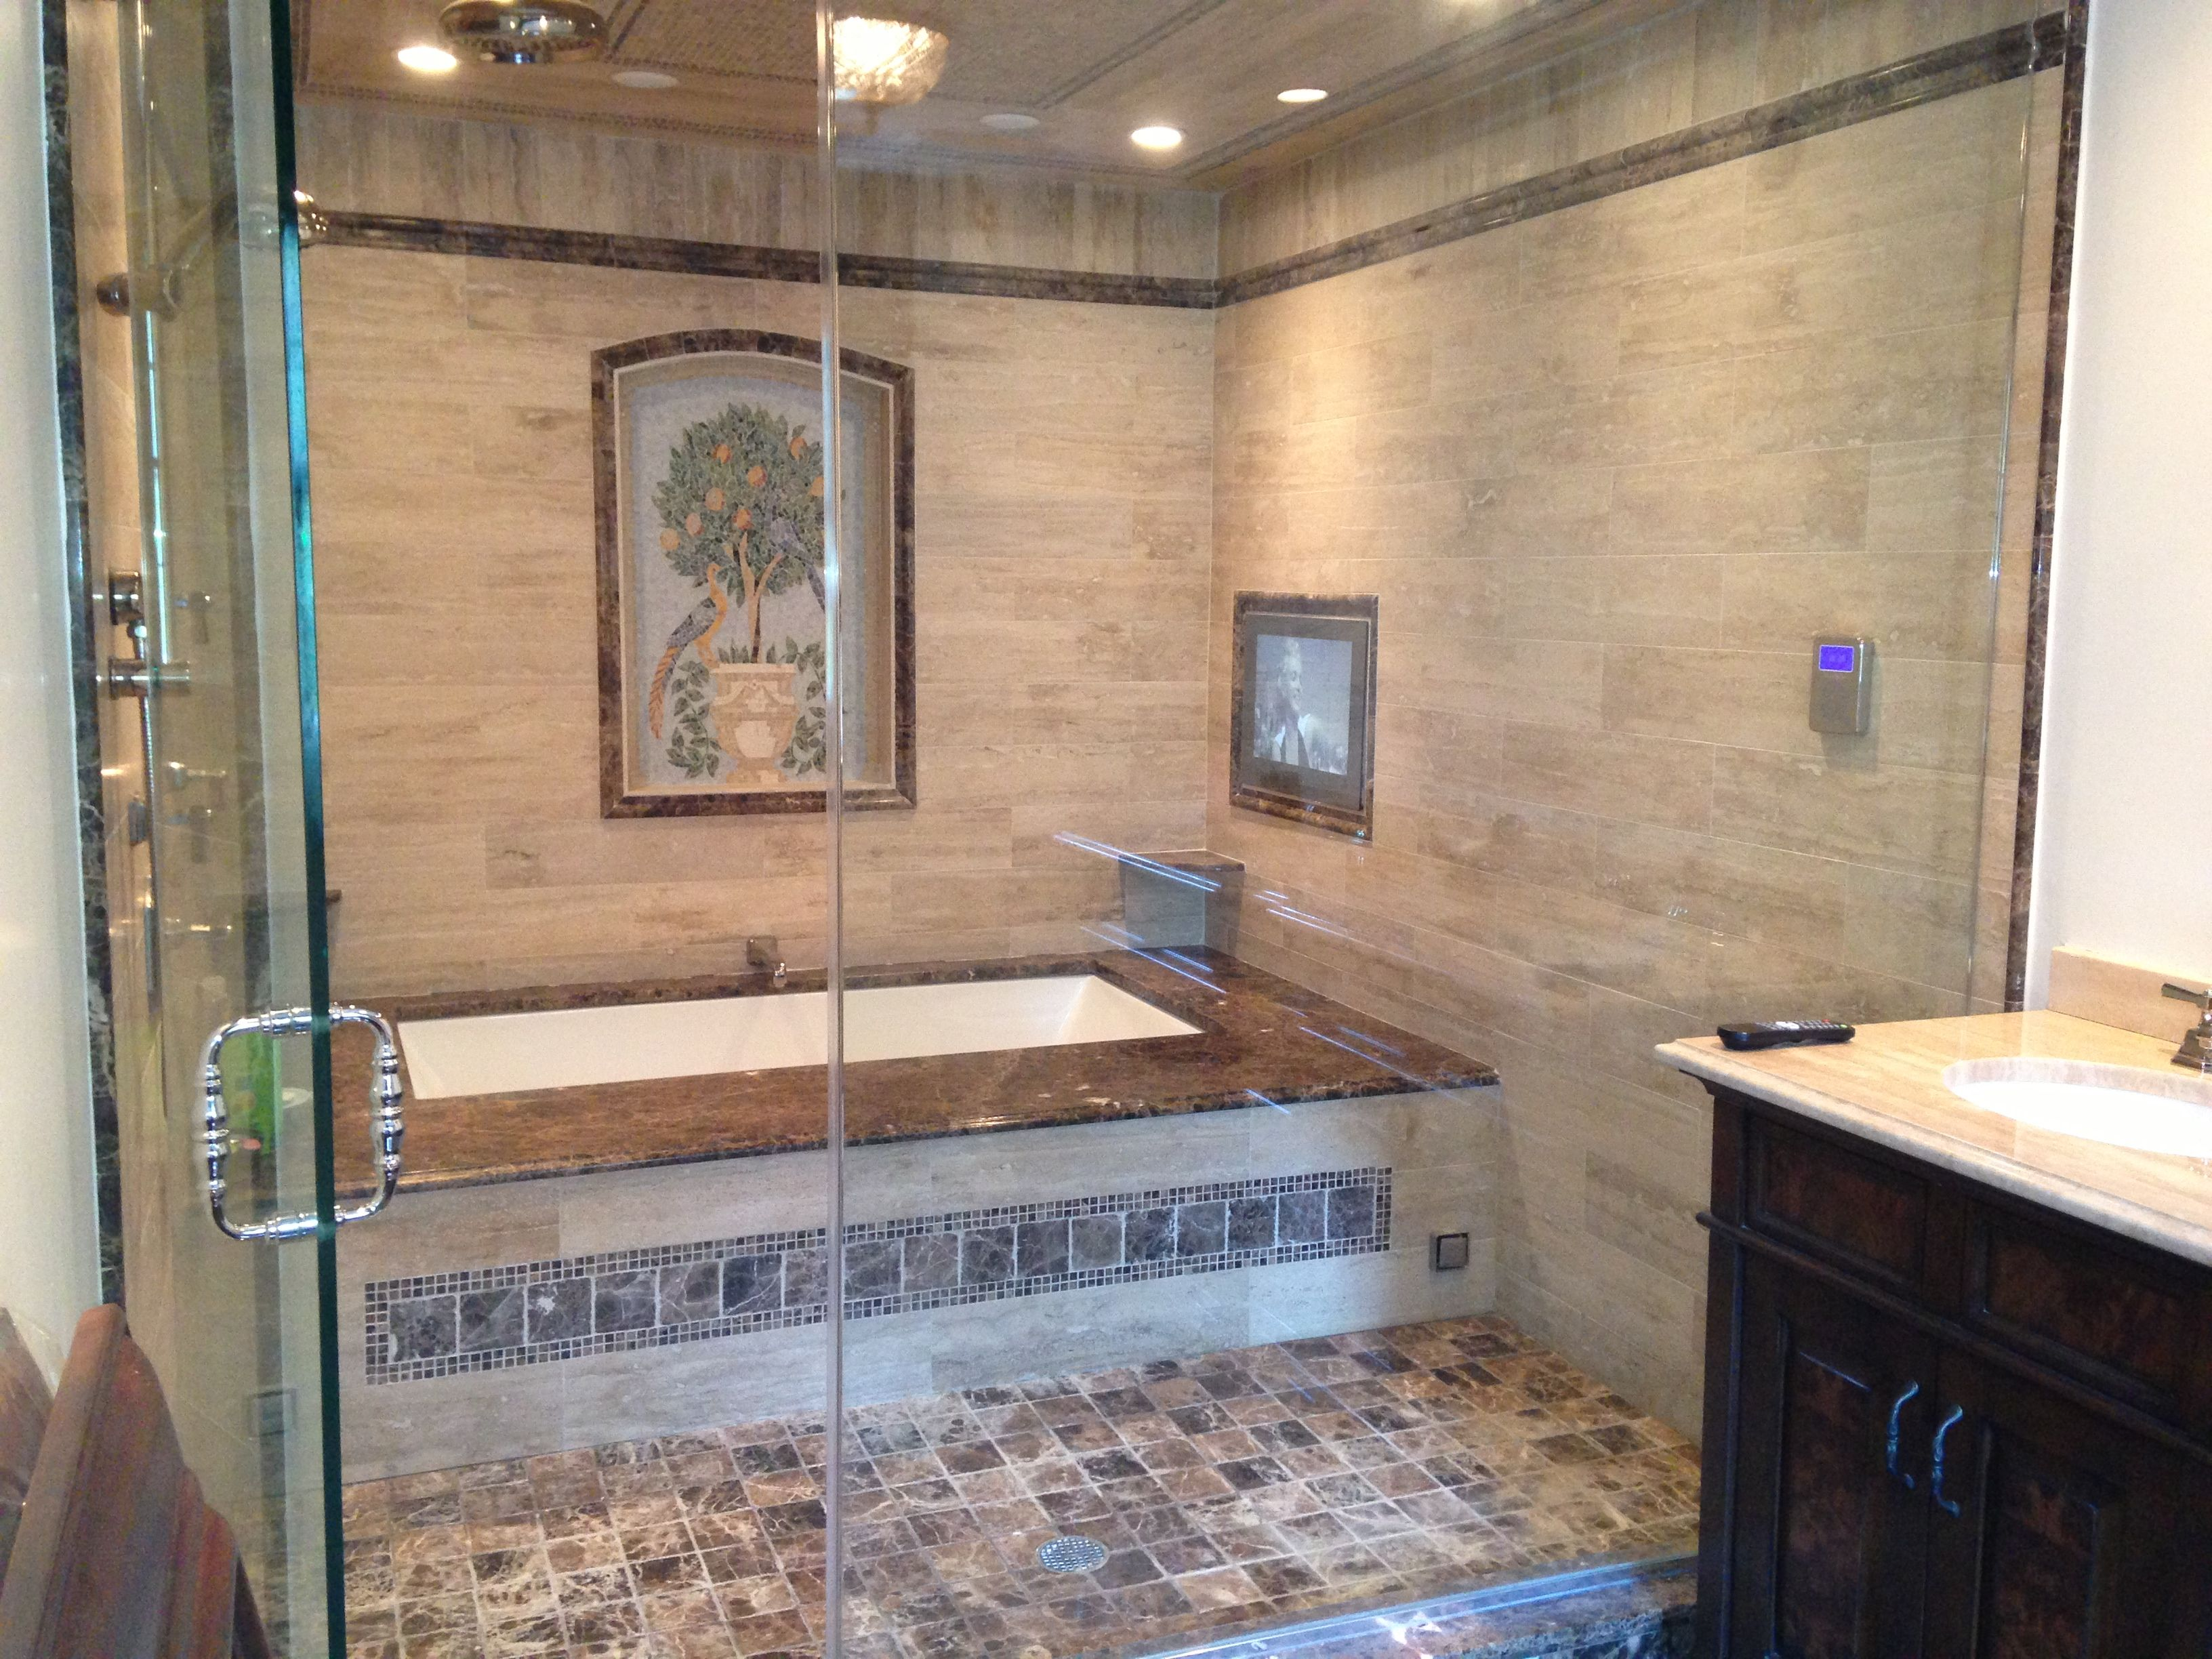 Big Tub Shower Combo Part - 23: Big Bathtub Behind Glass Doors With Enclosed Shower - Built-in Tv In The  Tile